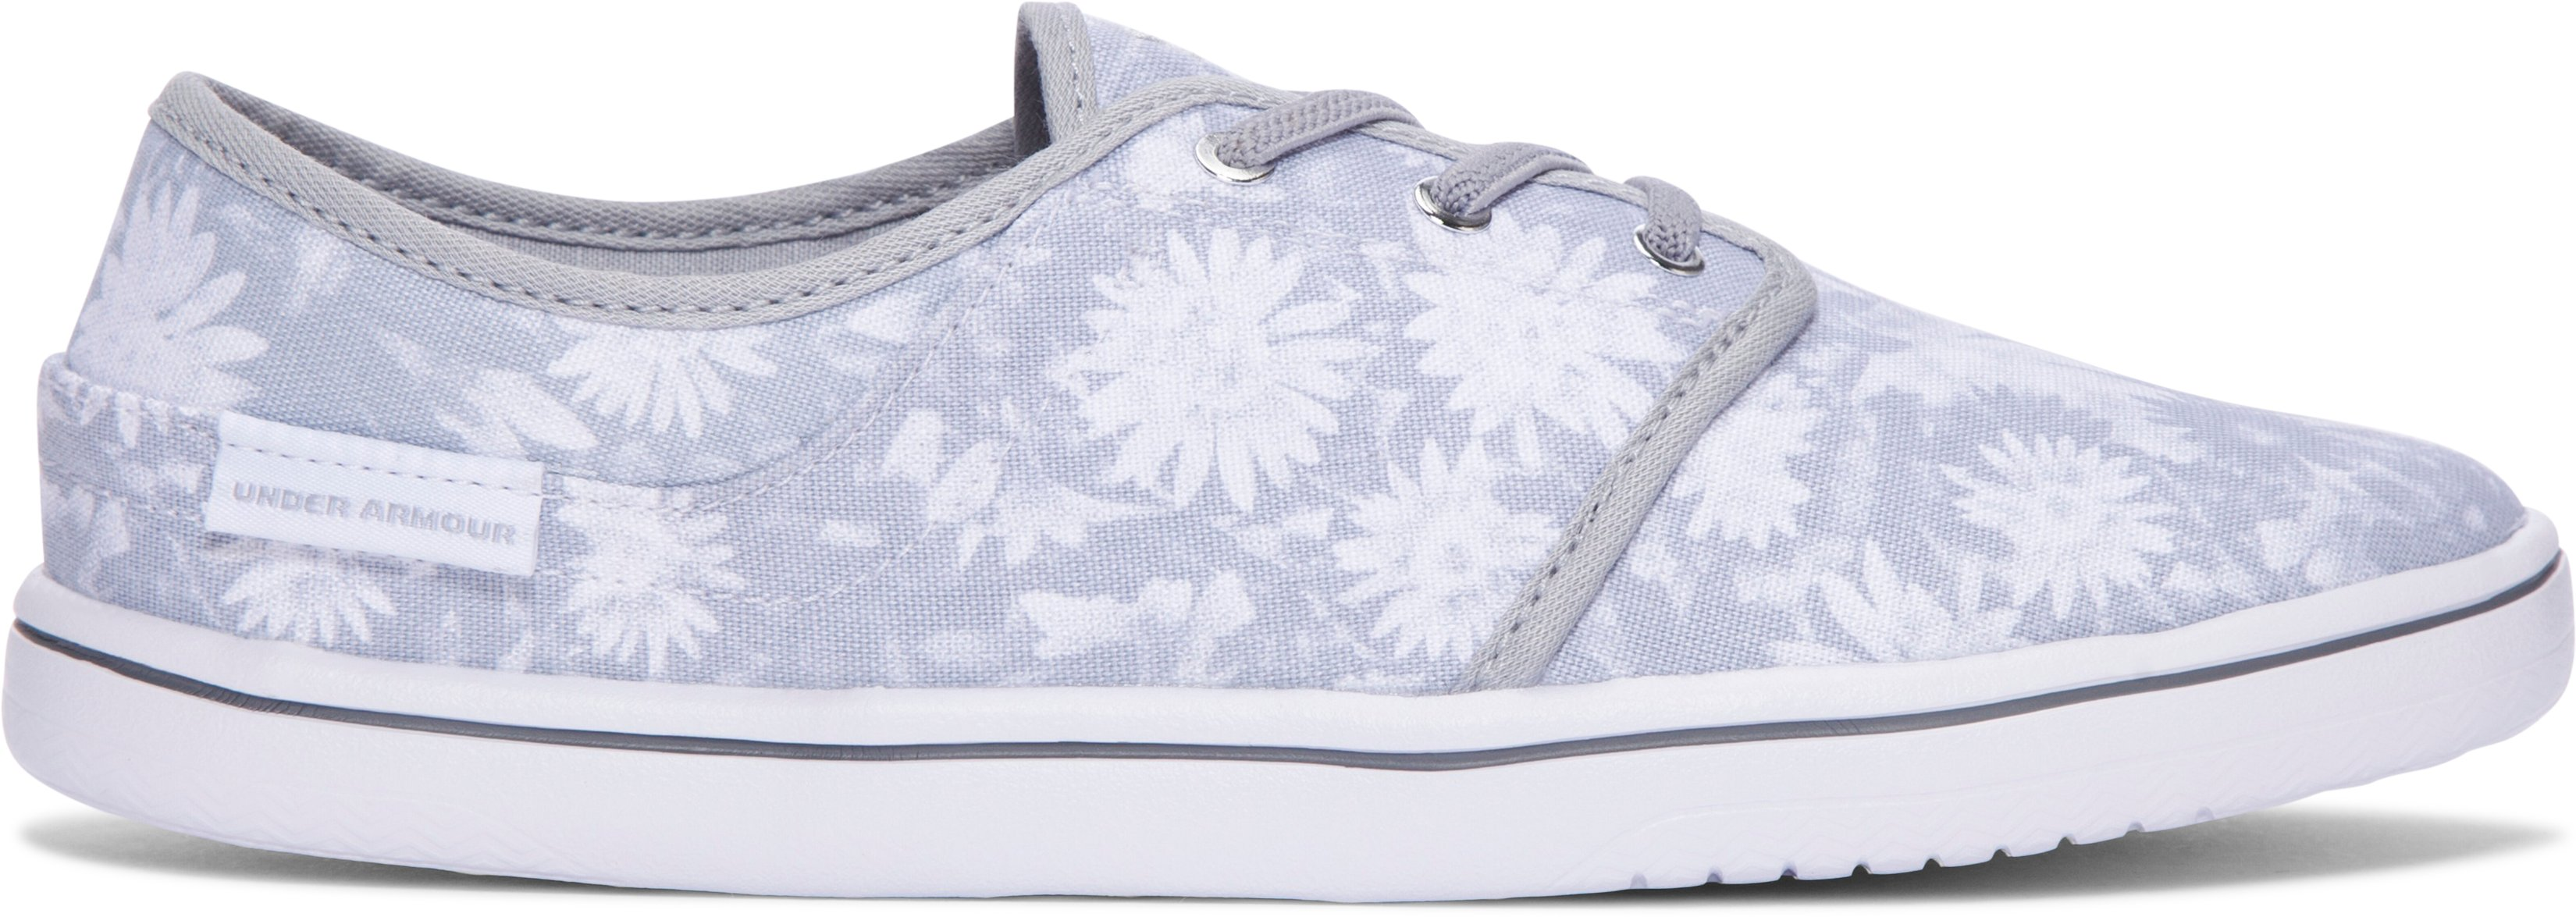 Women's UA Street Encounter Floral Shoes, White,